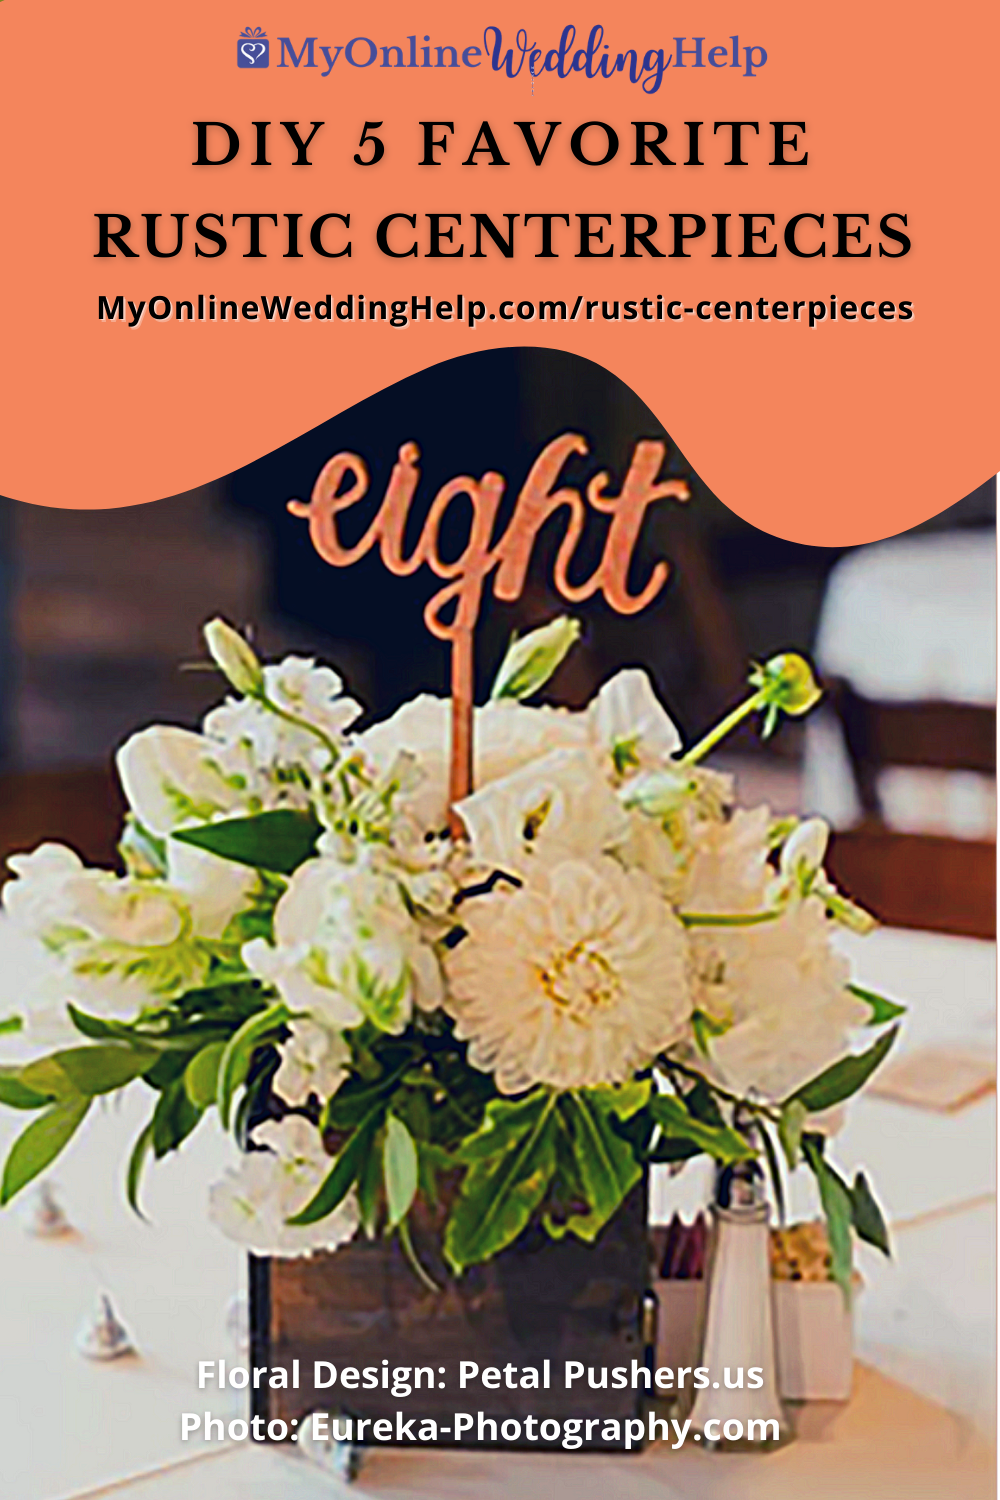 DIY 5 Favorite Rustic Centerpieces text with an orange background and picture of a rustic centerpiece with flowers, wooden box, and table number set on a table.